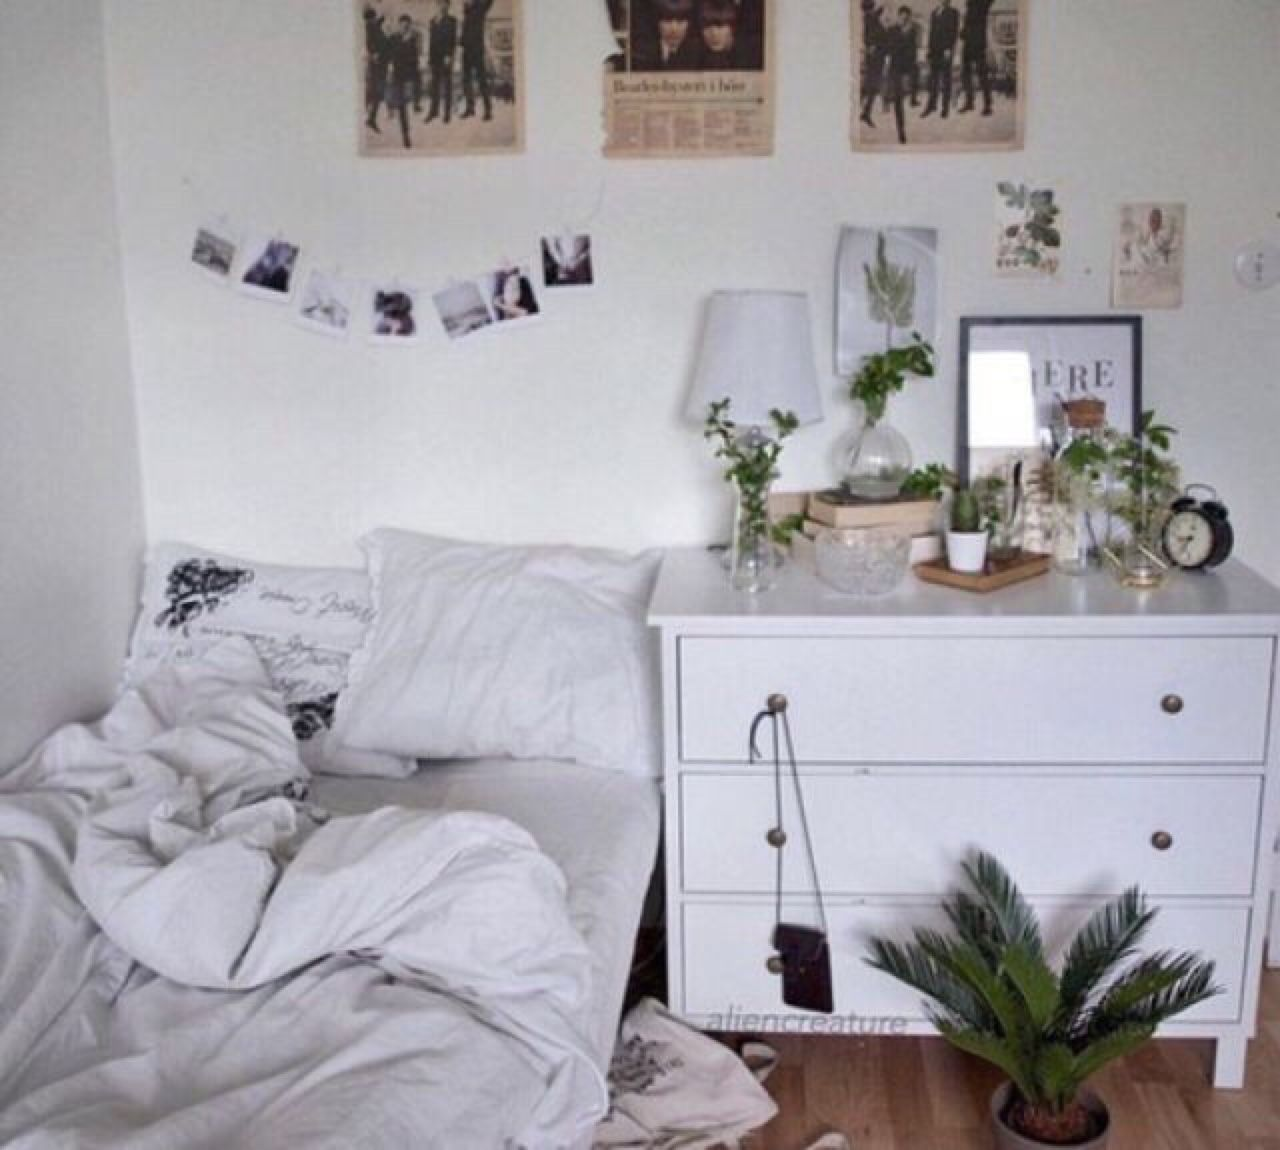 Aesthetic tumblr grunge room google search room for Bedroom decor inspiration tumblr